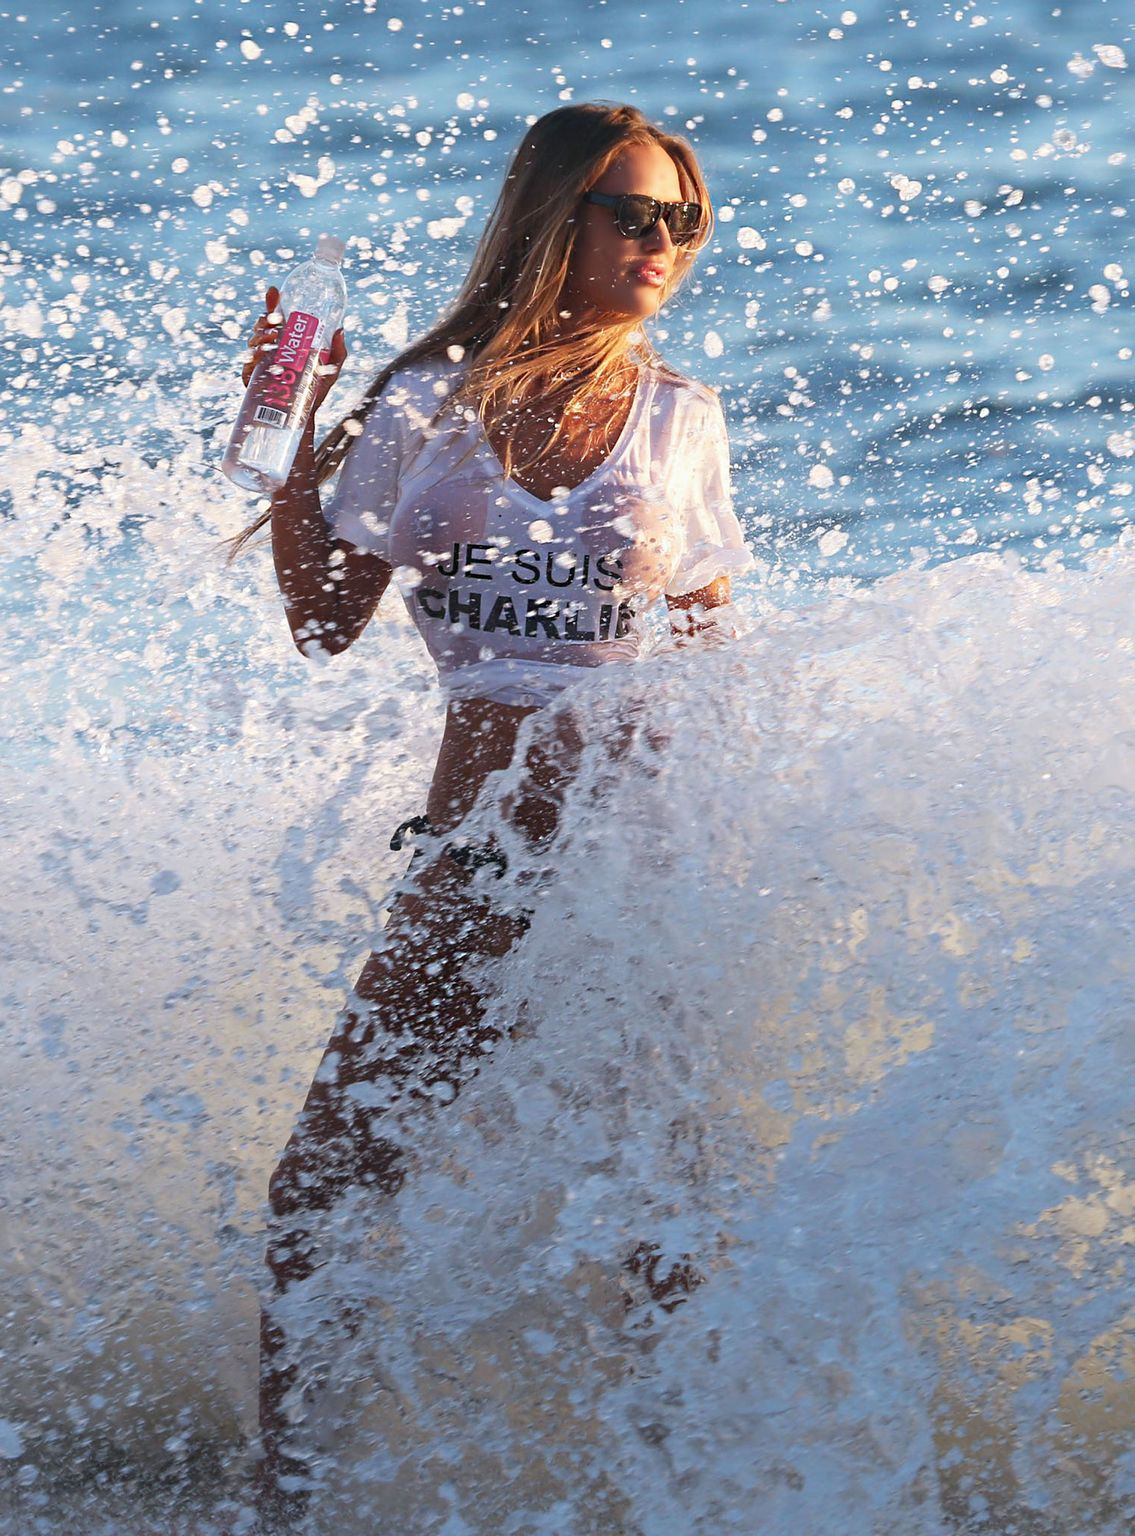 Charlie-riina-sexy-photoshoot-138-water-25